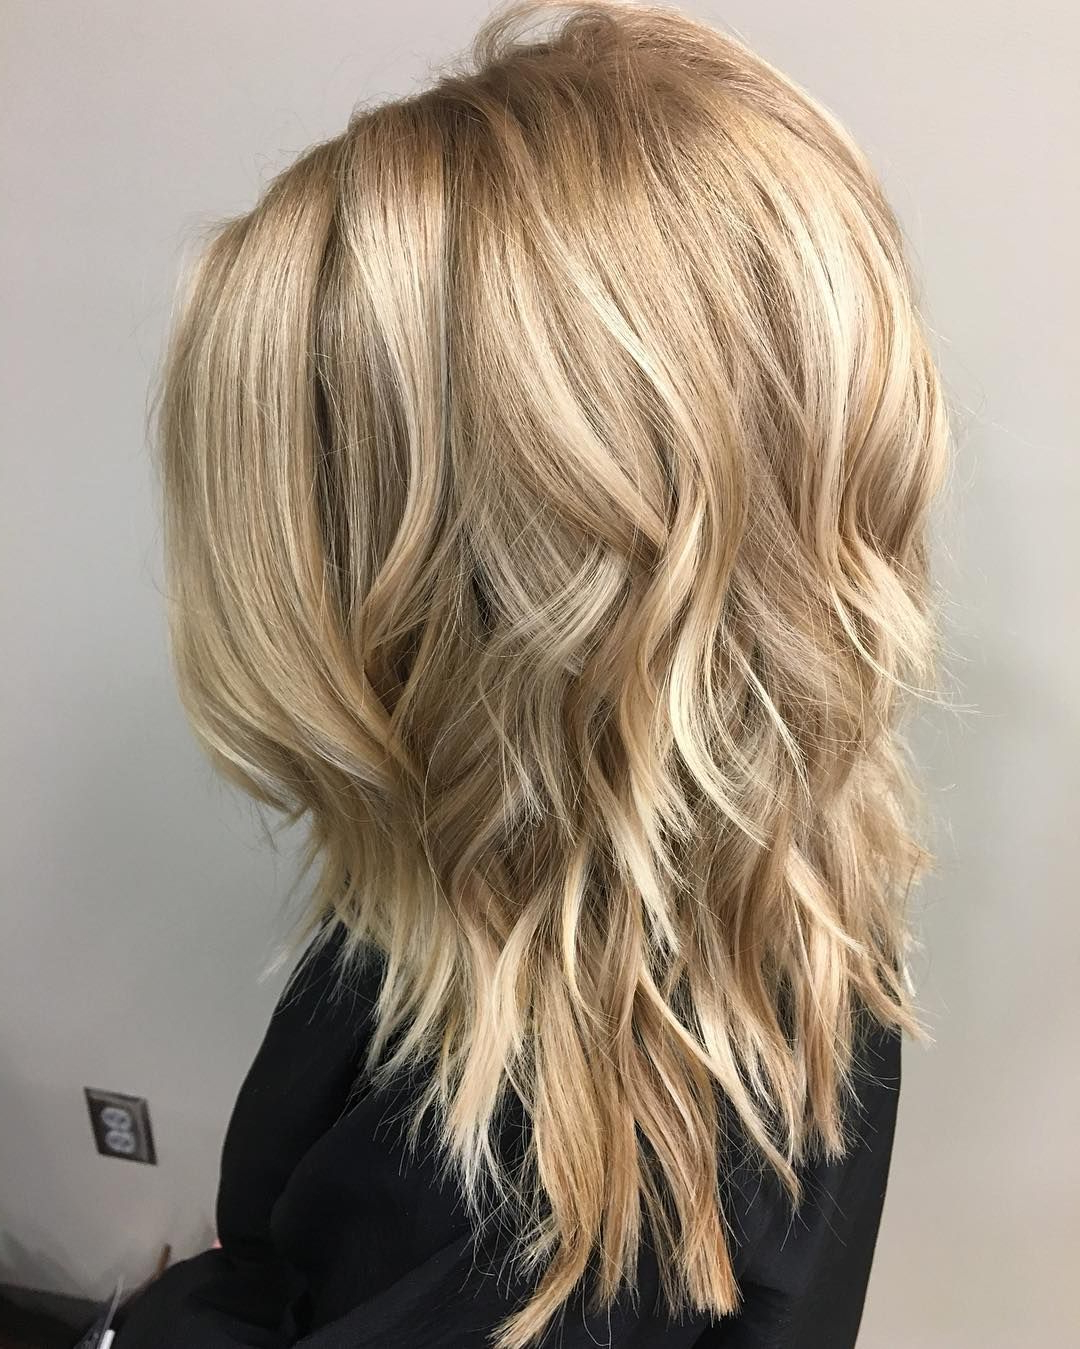 Medium Hairstyle : Medium Length Layered Hairstyles Adorable With For Well Known Medium Haircuts Layered Styles (View 5 of 20)